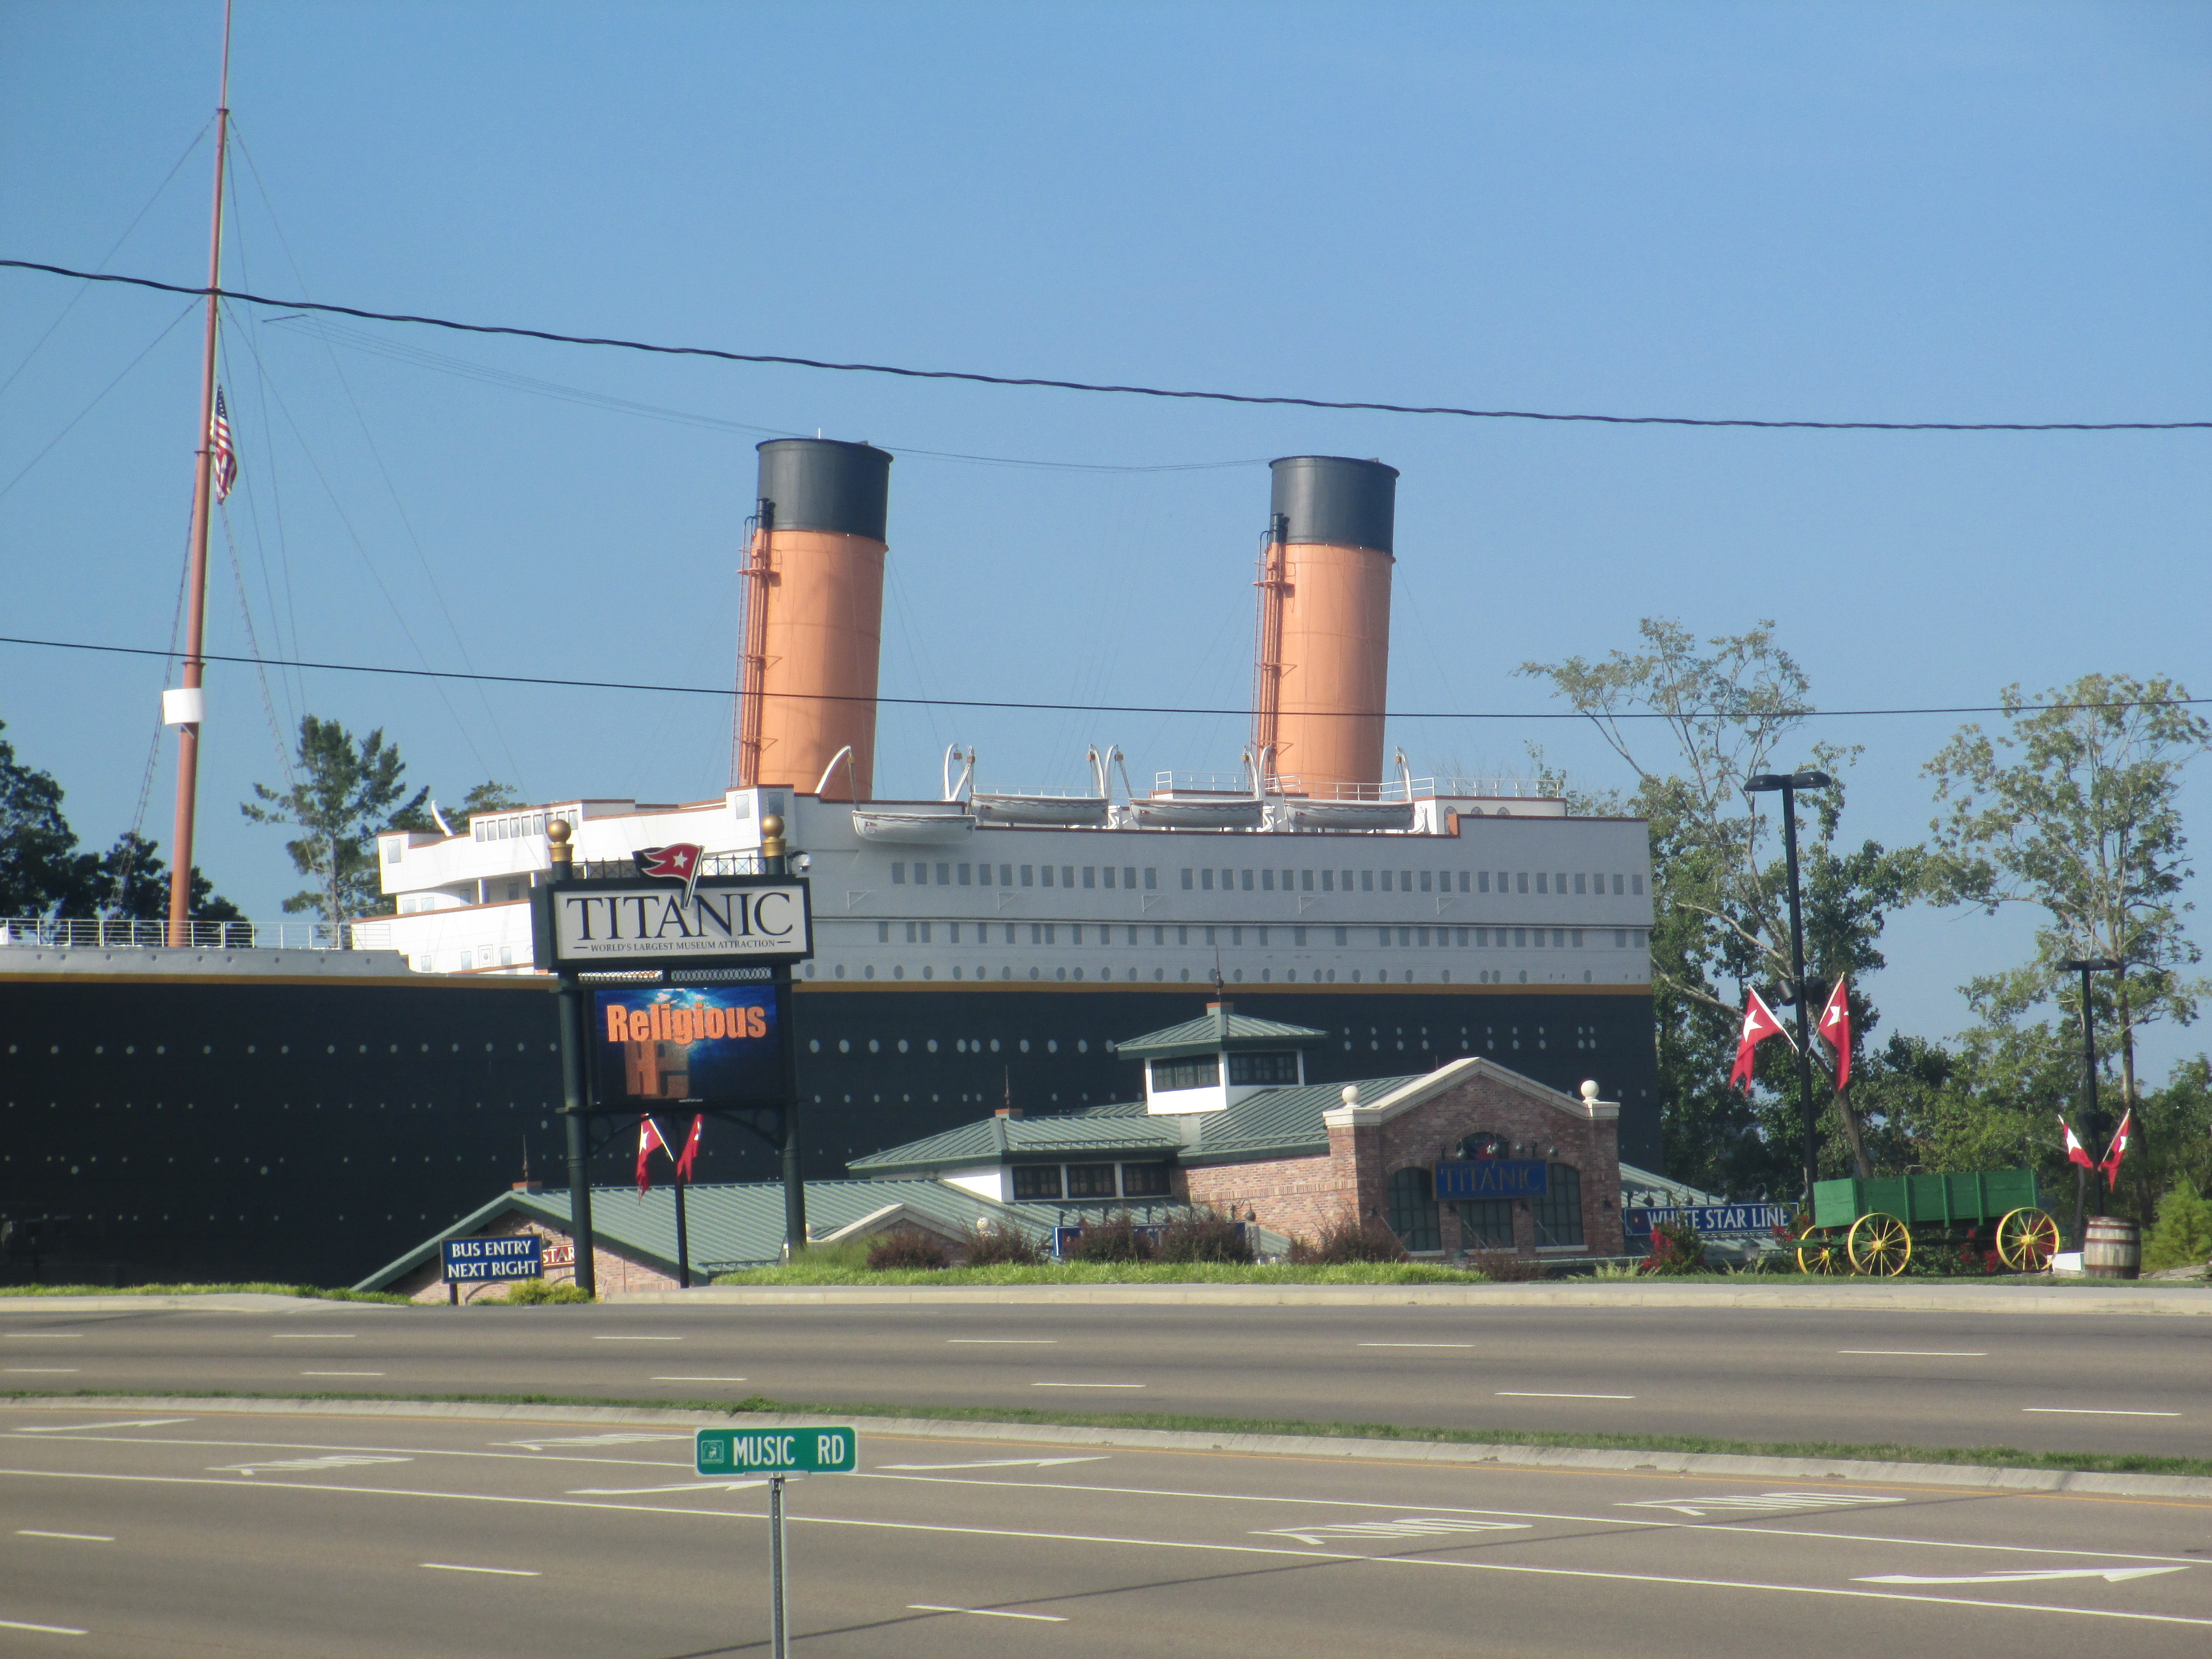 Titanic Museum Pigeon Forge Tennessee Wikipedia